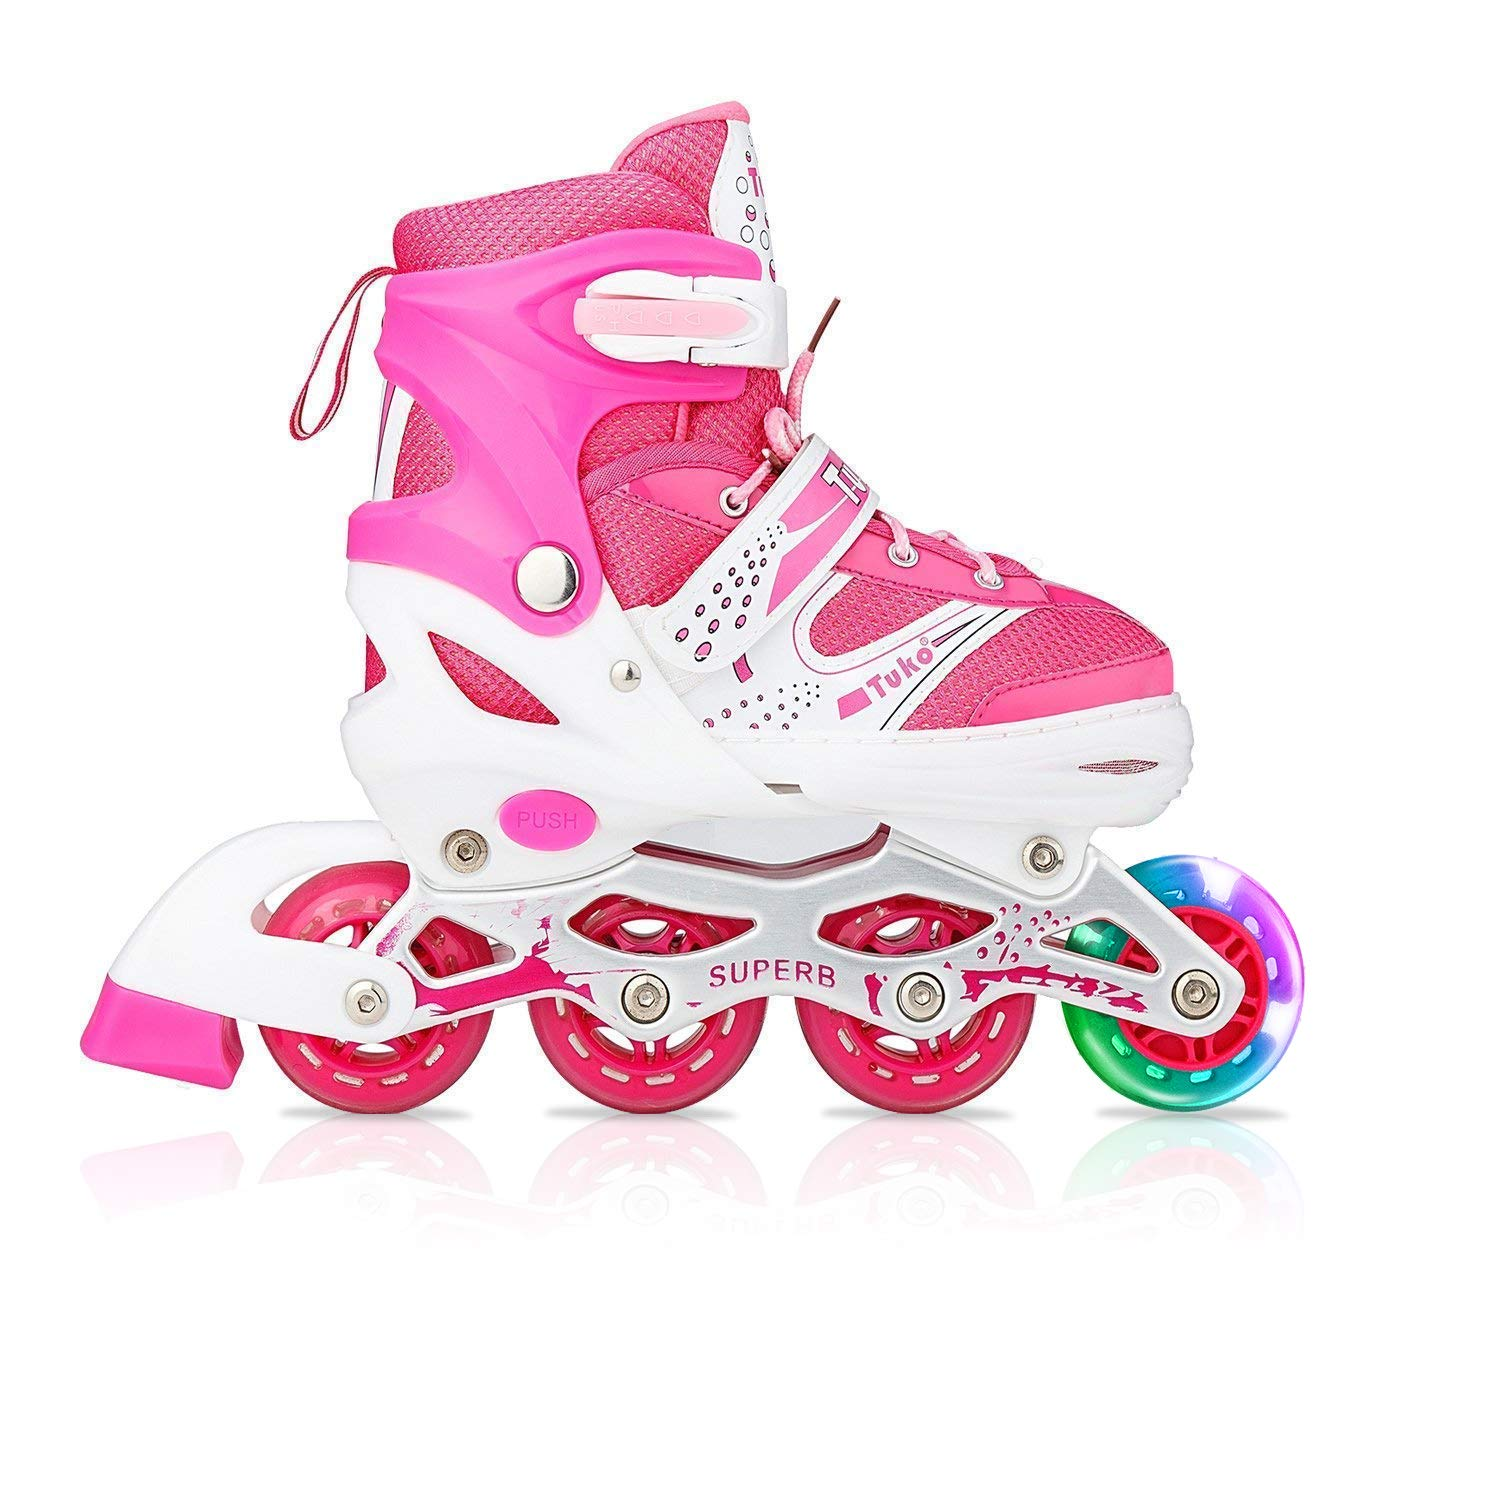 Tuko Kids Adjustable Roller Skates Girl Blades Illuminating Inline Skates(Small-Little Kid(12-1 US))